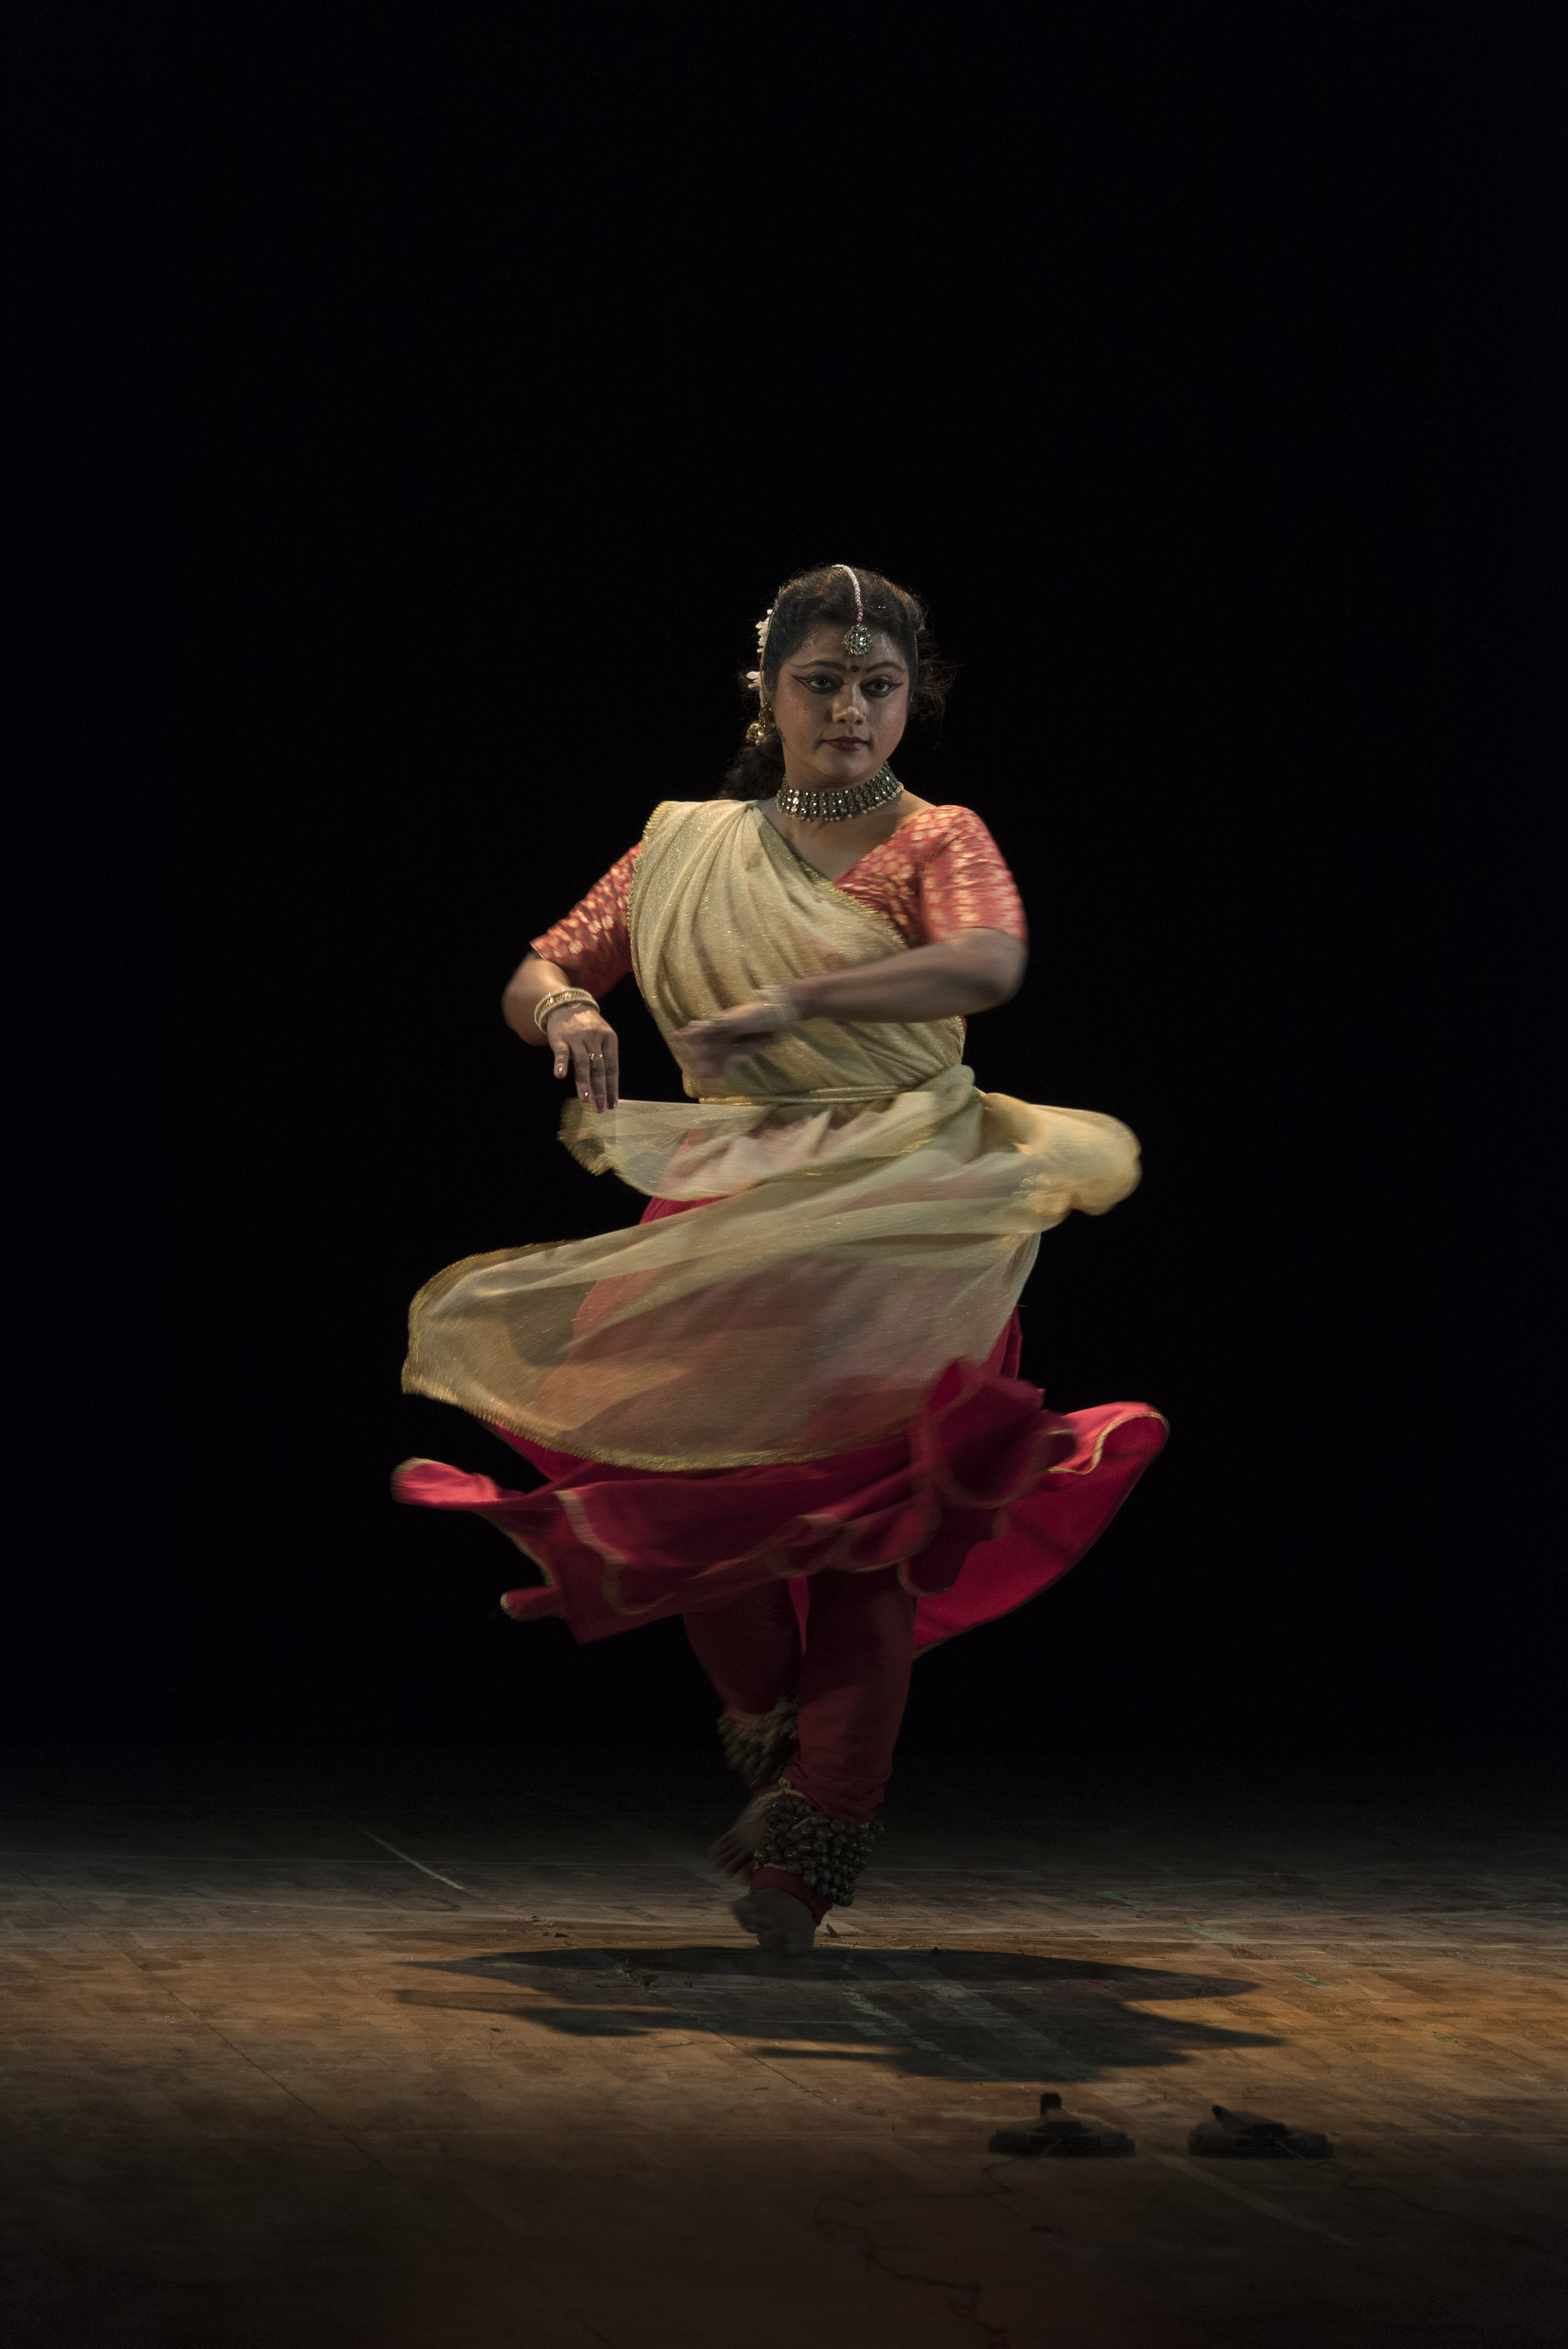 Traditional Dancer in India